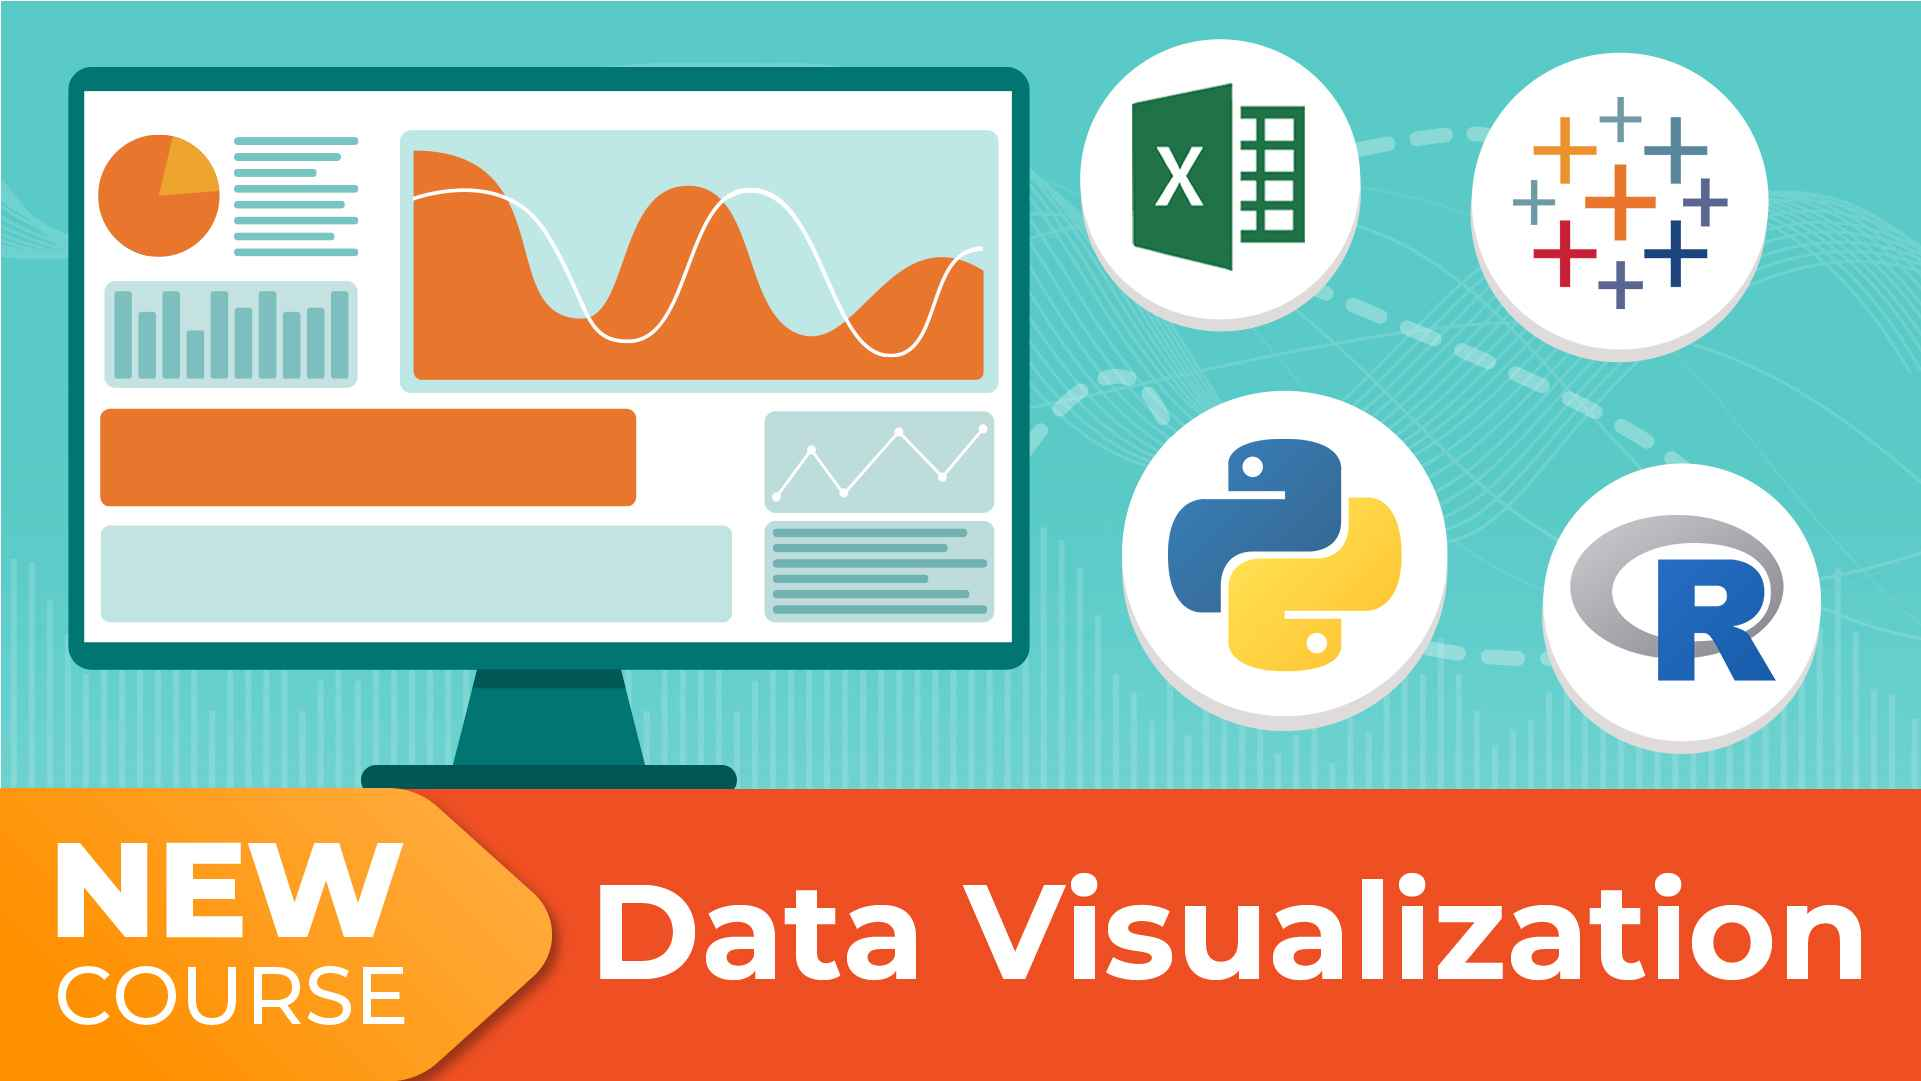 Data Visualization course